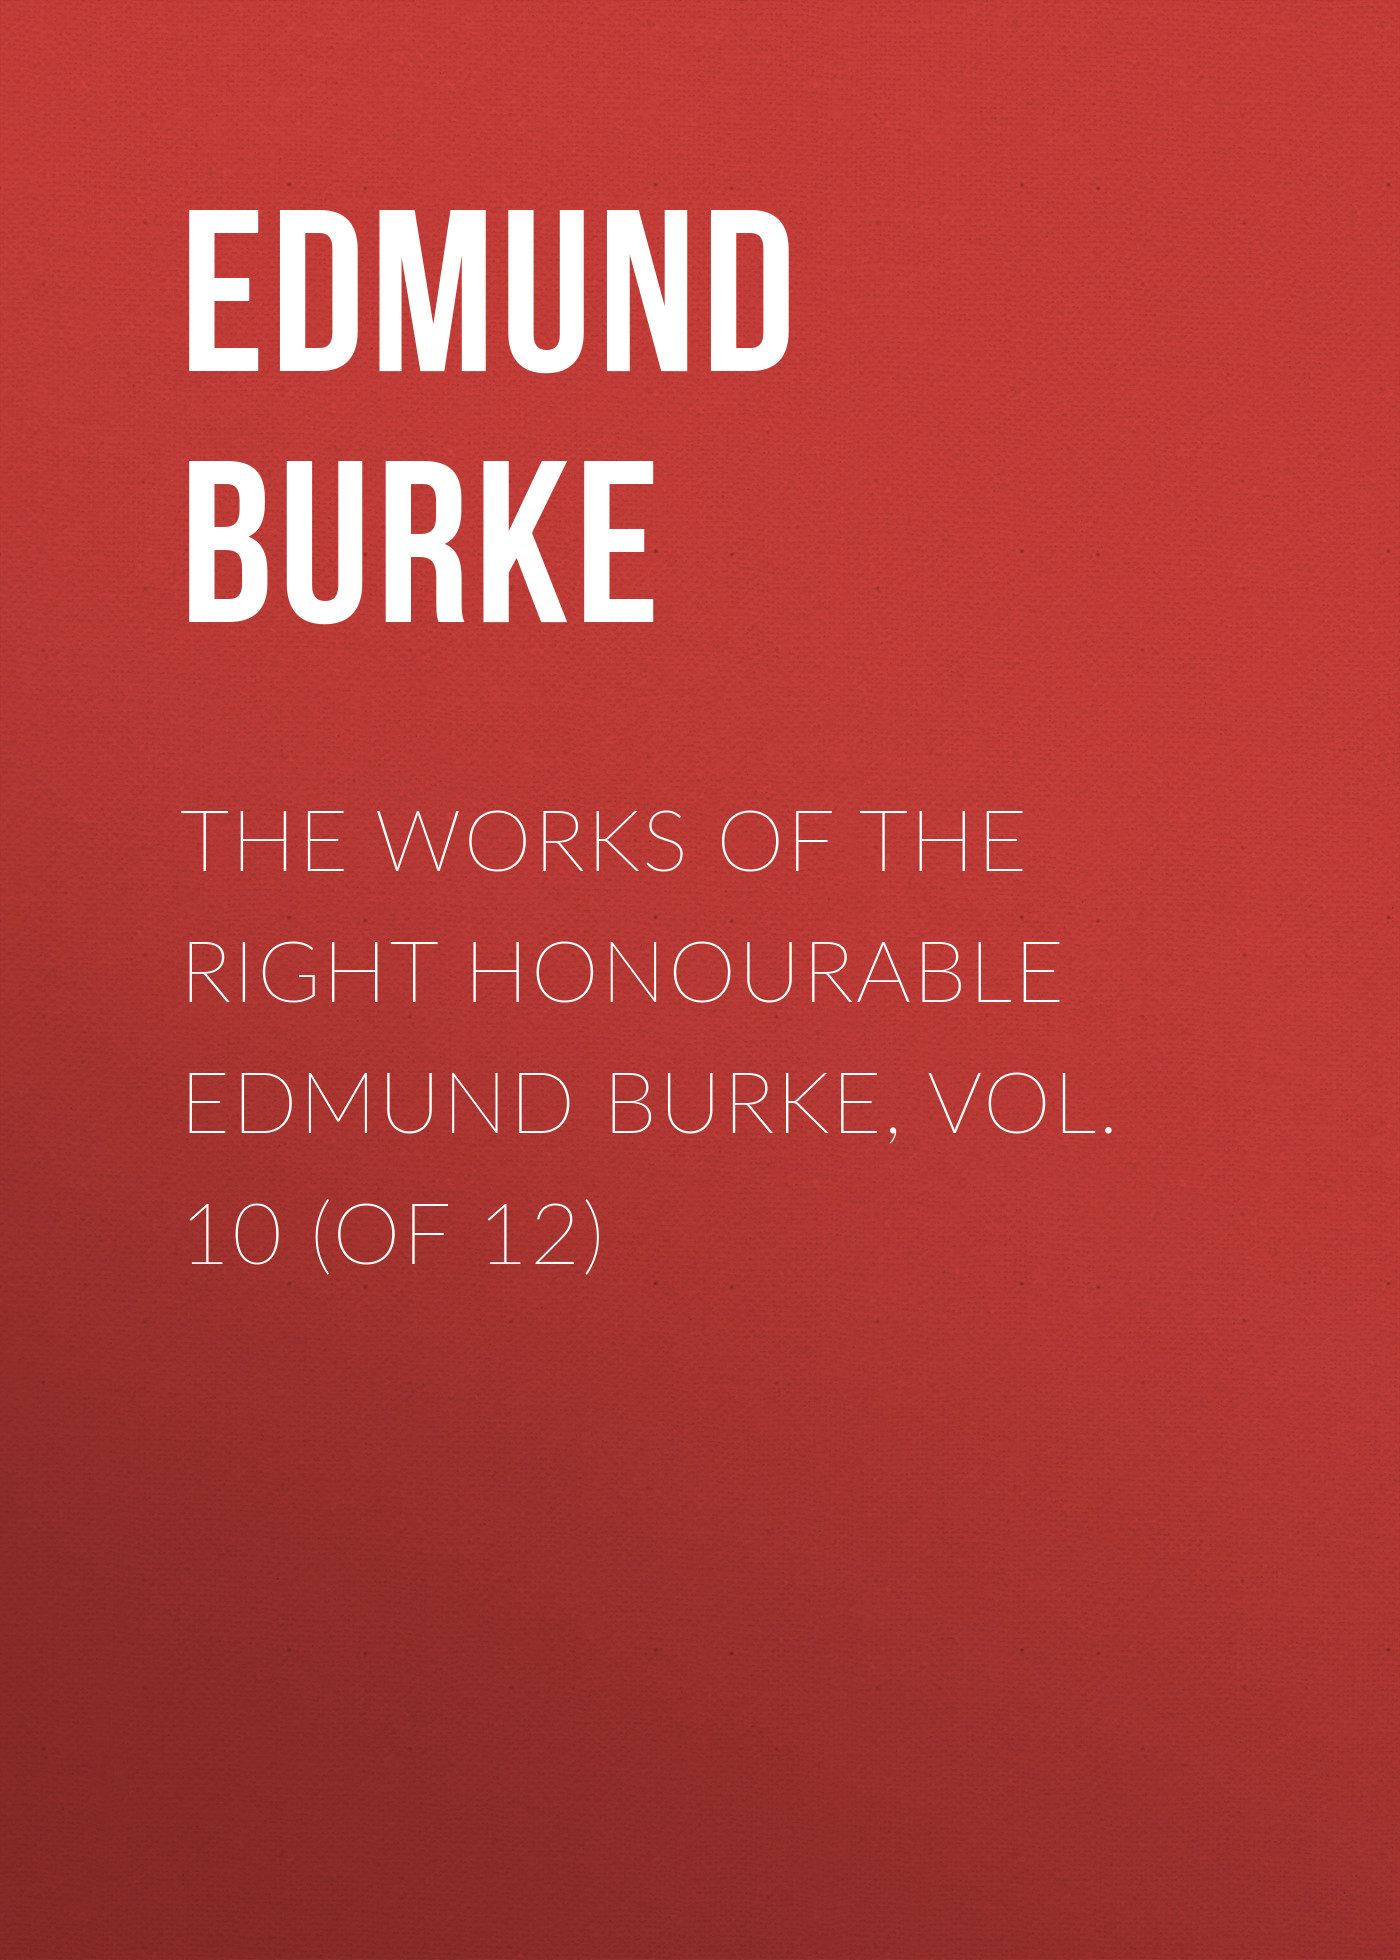 Edmund Burke The Works of the Right Honourable Edmund Burke, Vol. 10 (of 12) edmund burke the works of the right honourable edmund burke vol 02 of 12